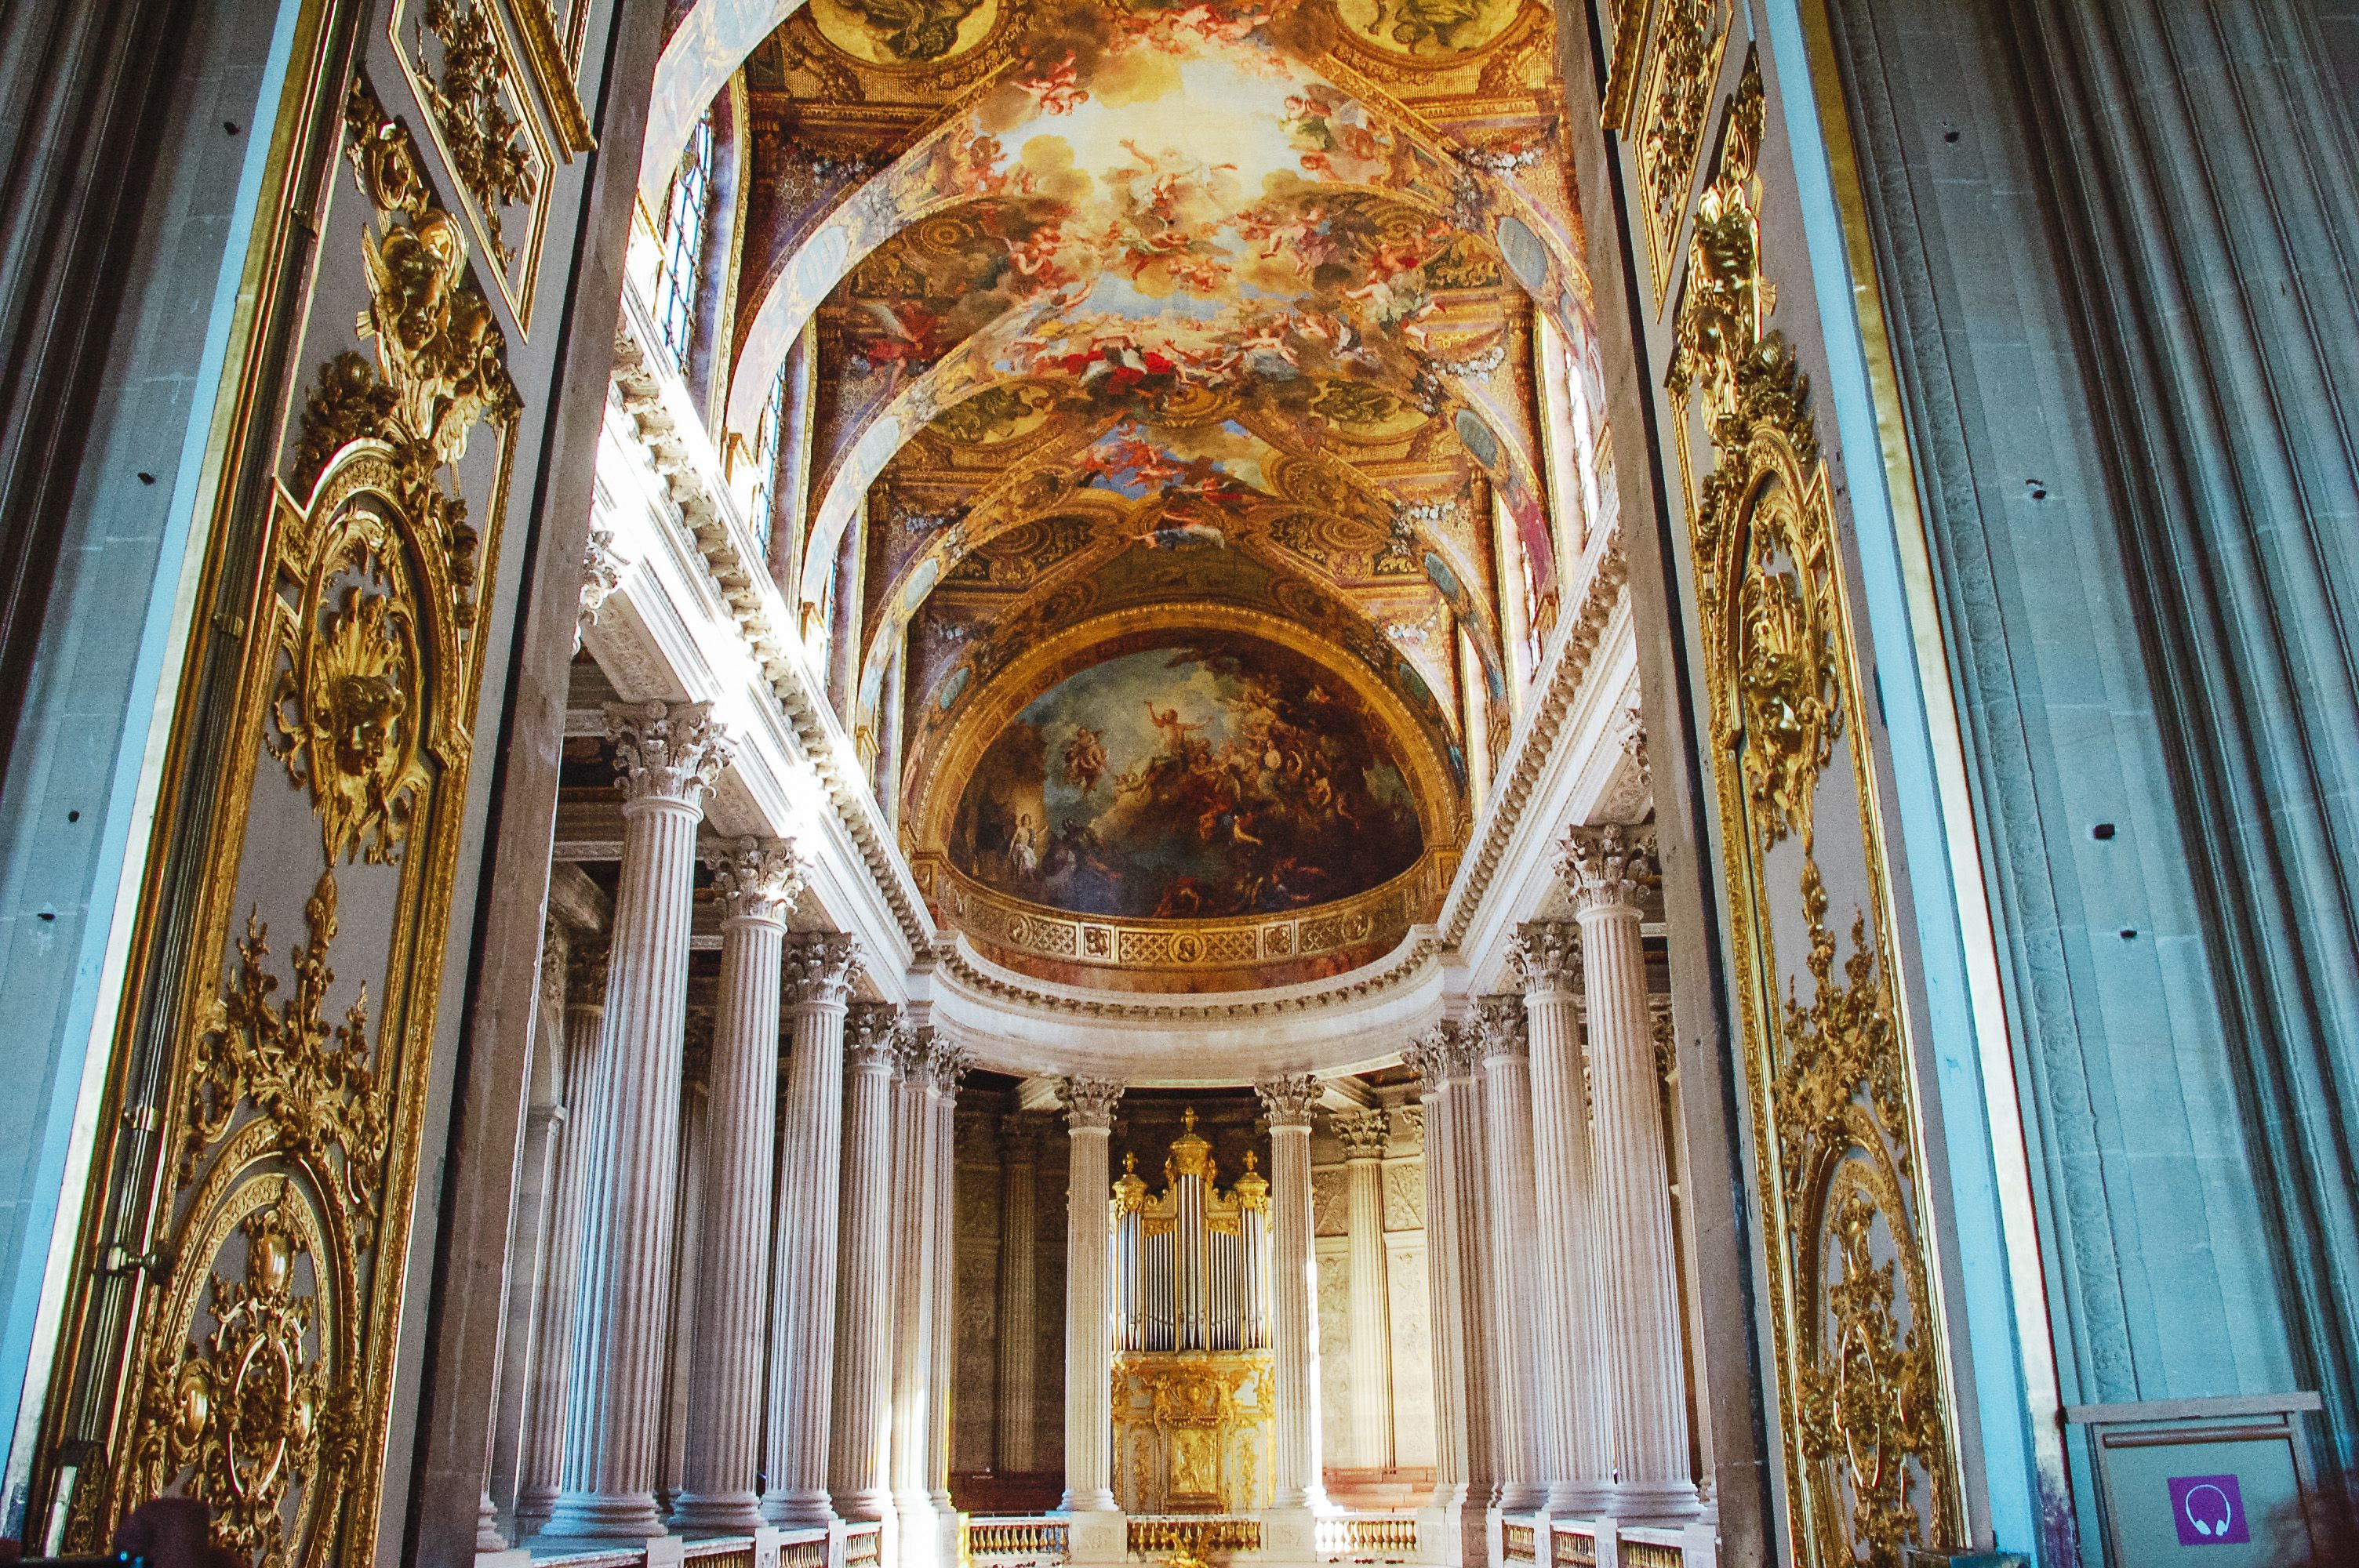 Inside a hall in Versailles